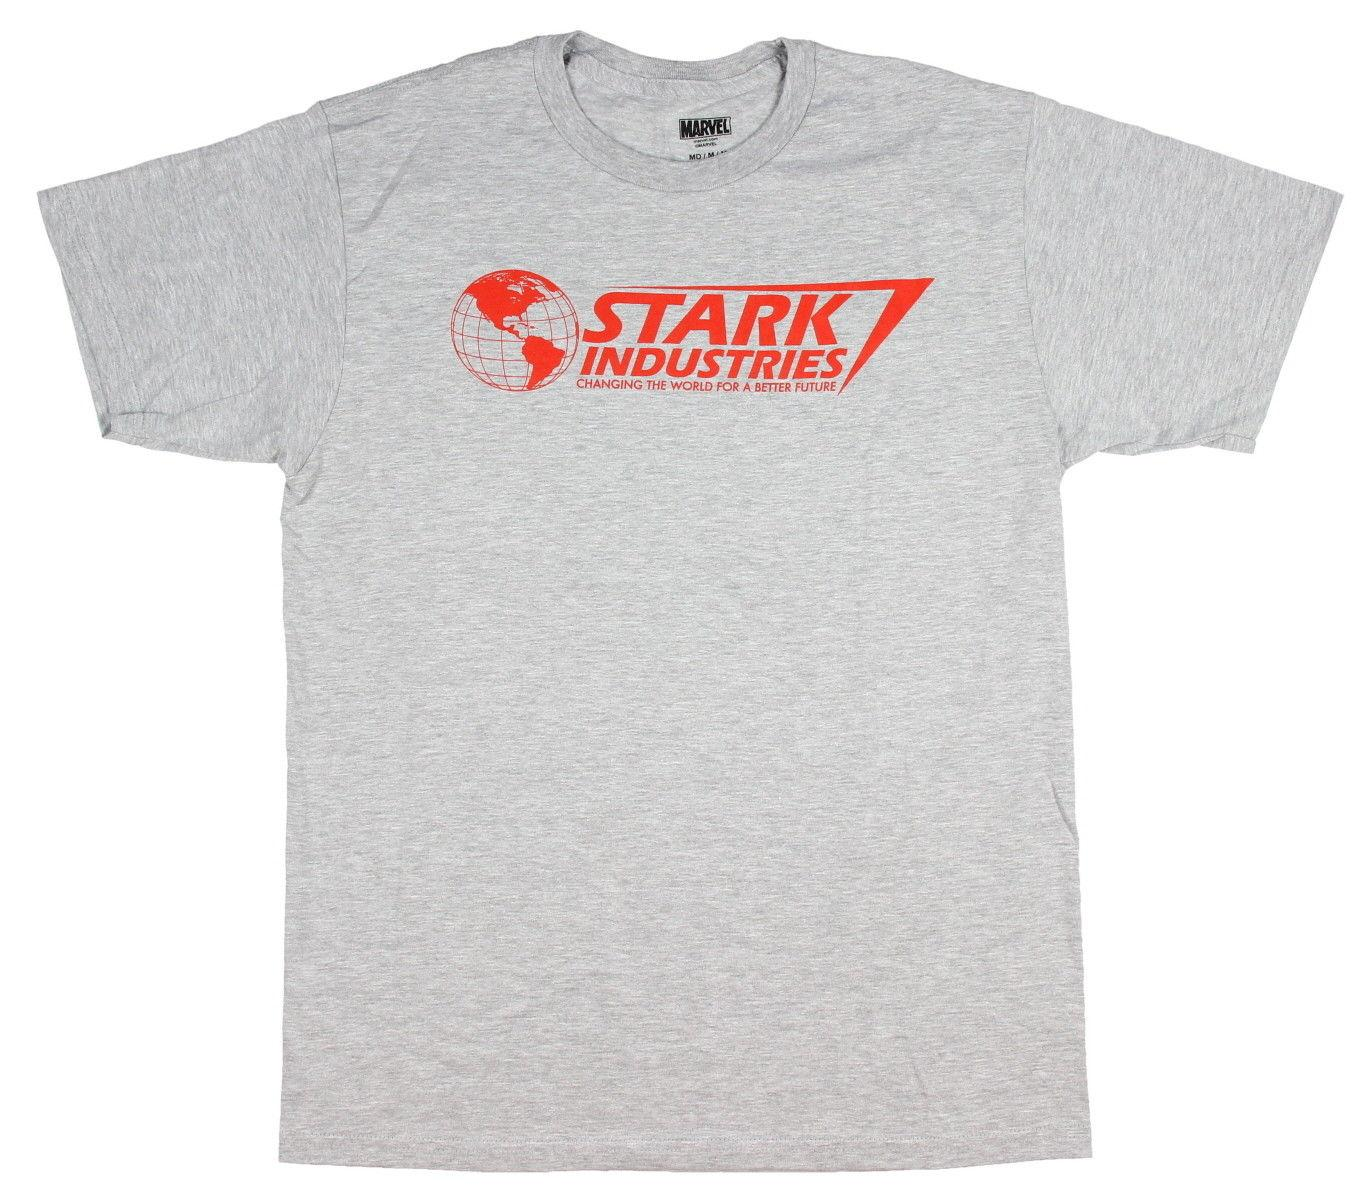 Grosshandel Marvel Iron Man Stark Industries Verandert Das T Shirt